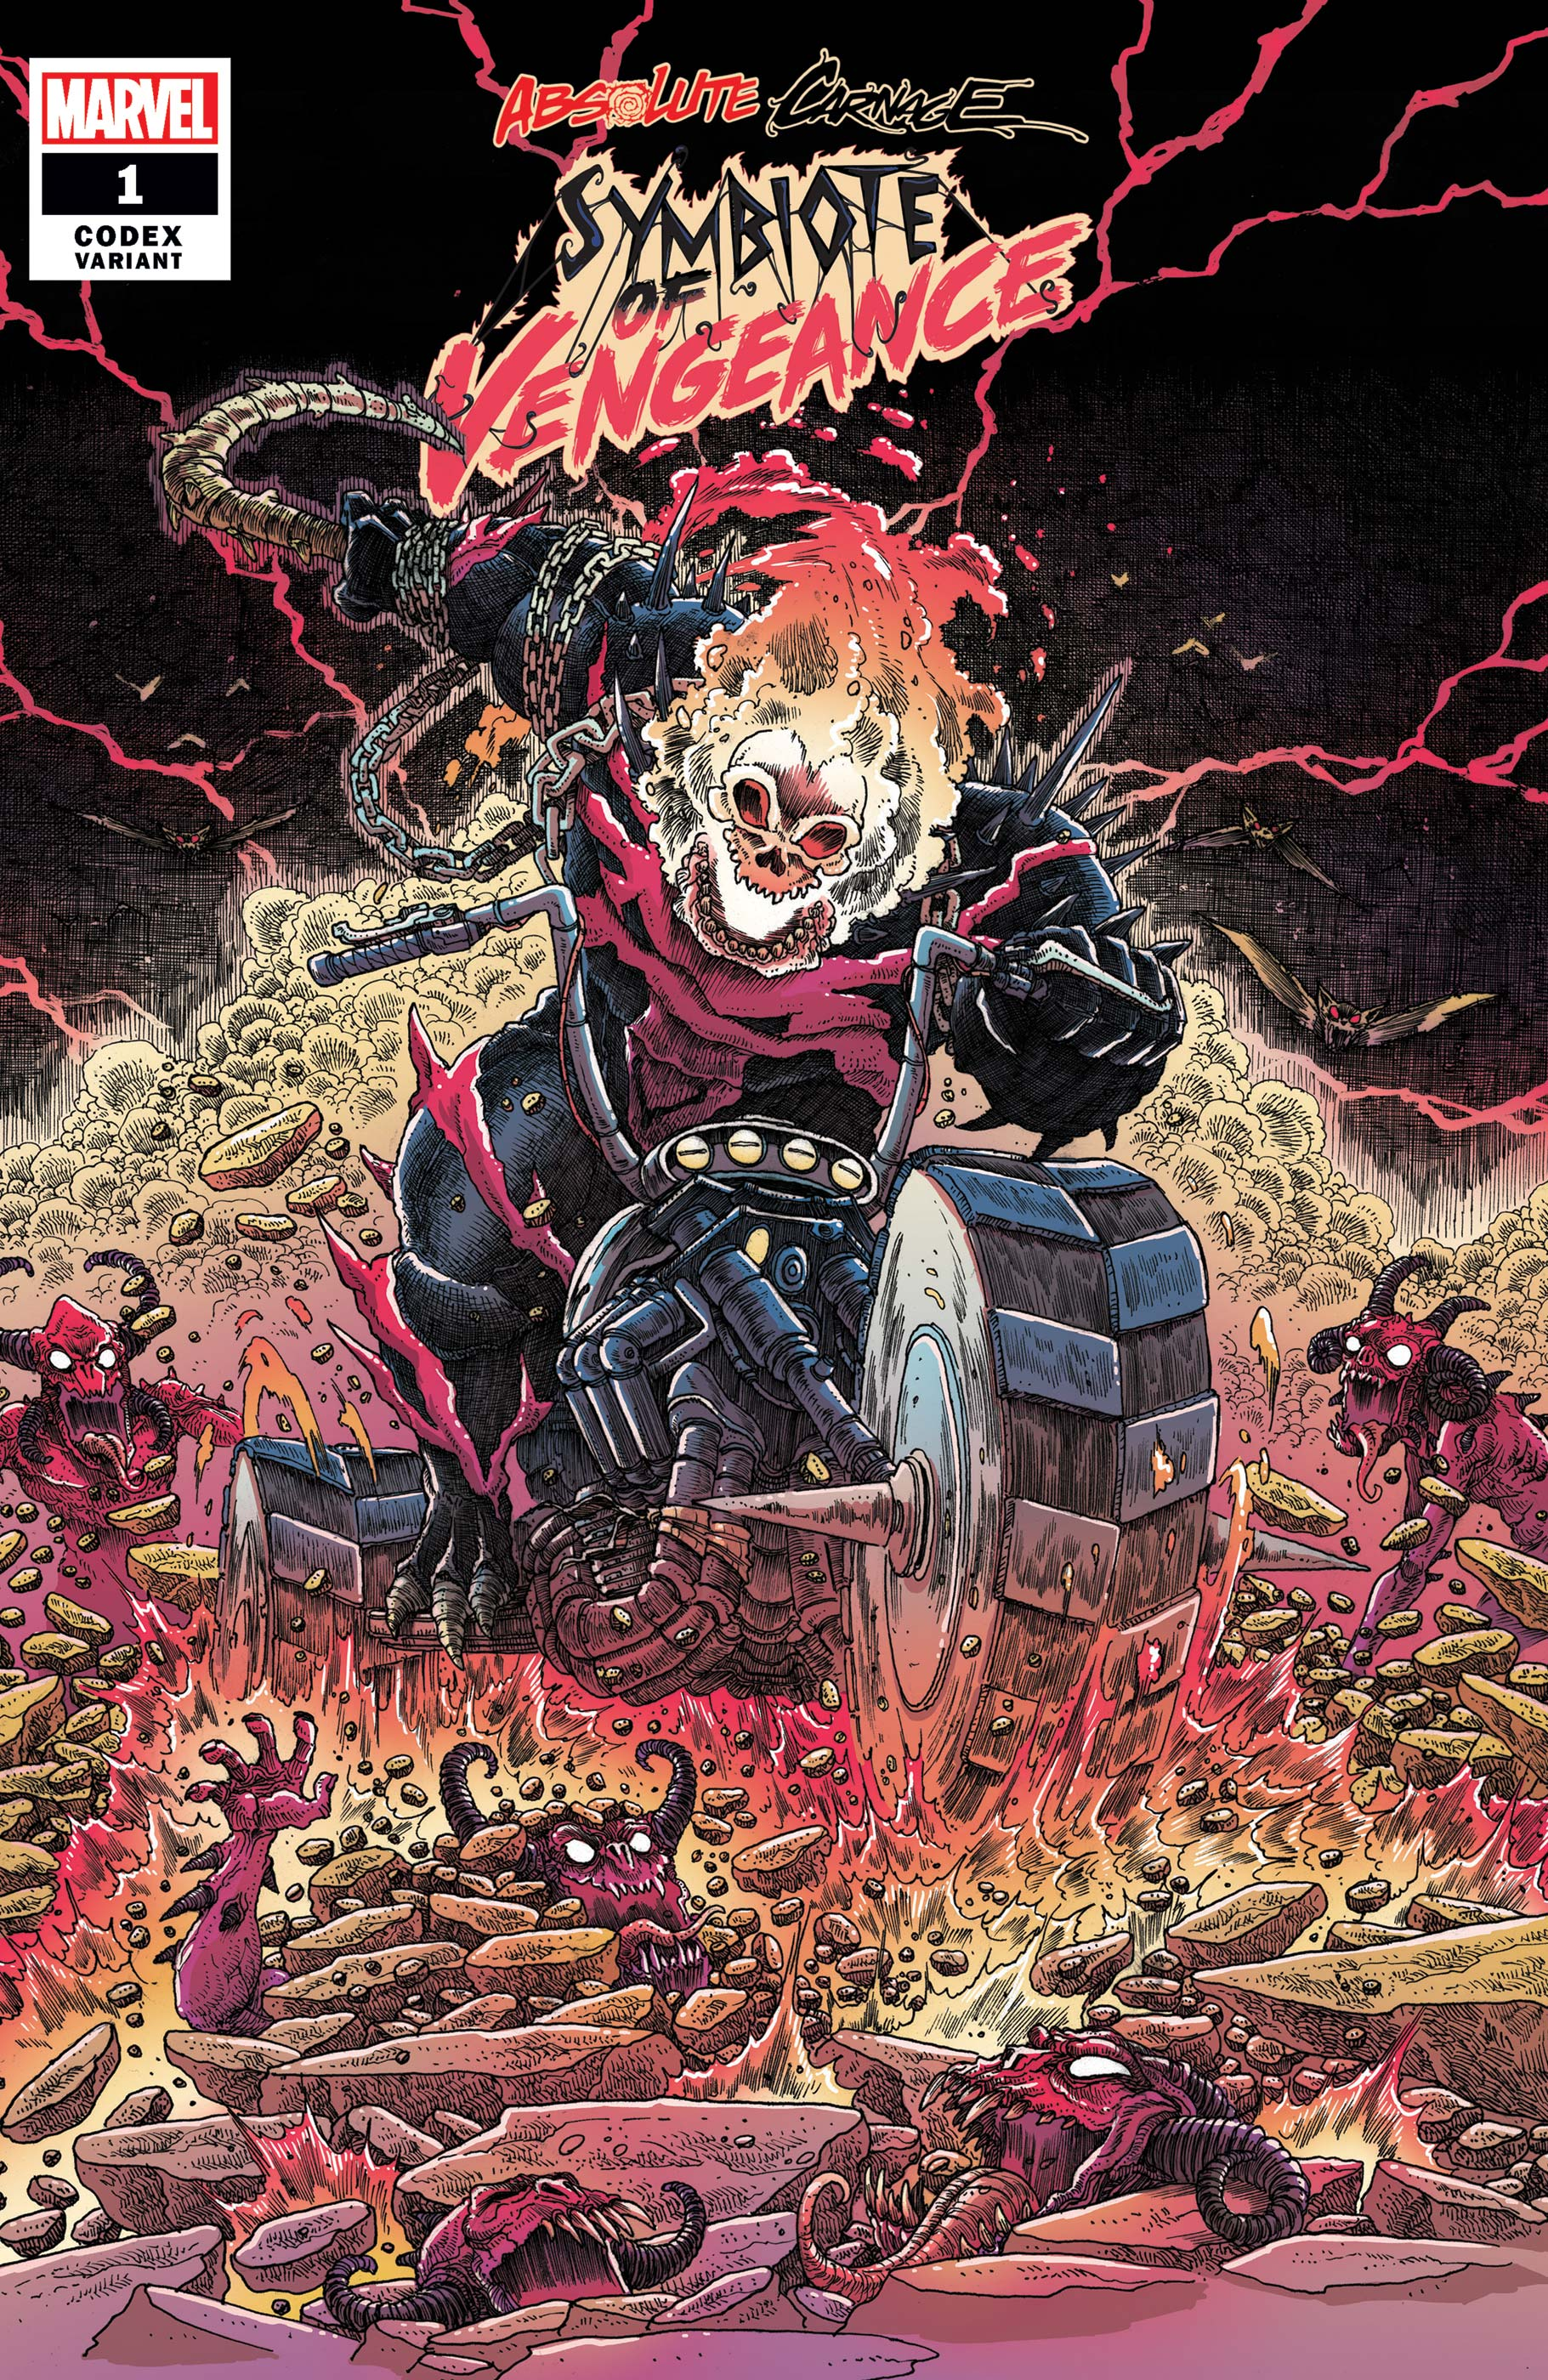 Absolute Carnage: Symbiote Of Vengeance (2019) #1 (Variant)